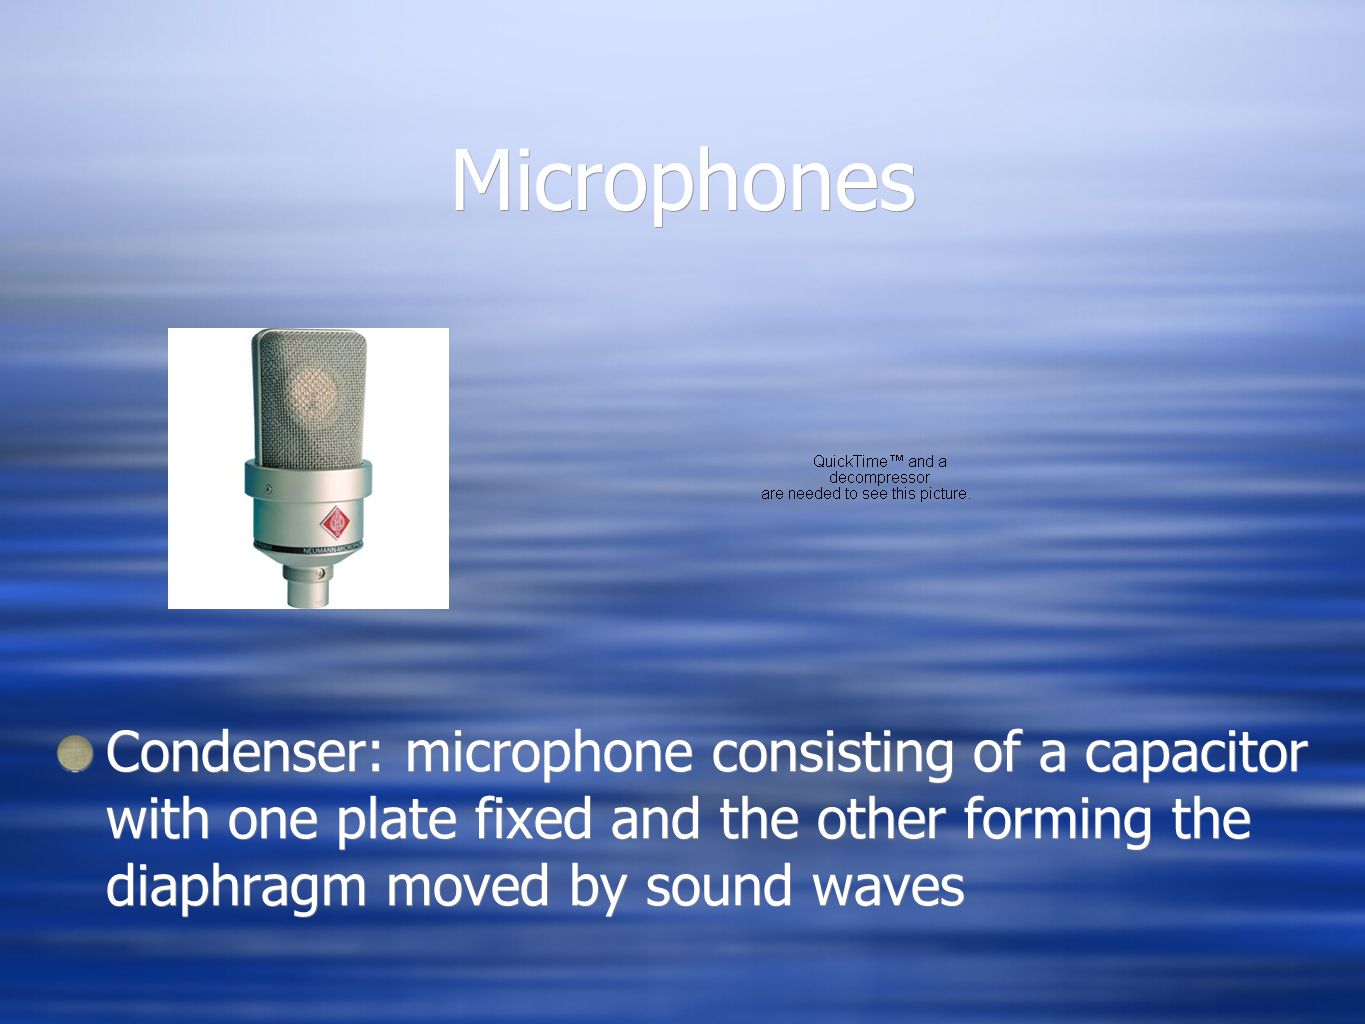 Microphones Condenser: microphone consisting of a capacitor with one plate fixed and the other forming the diaphragm moved by sound waves